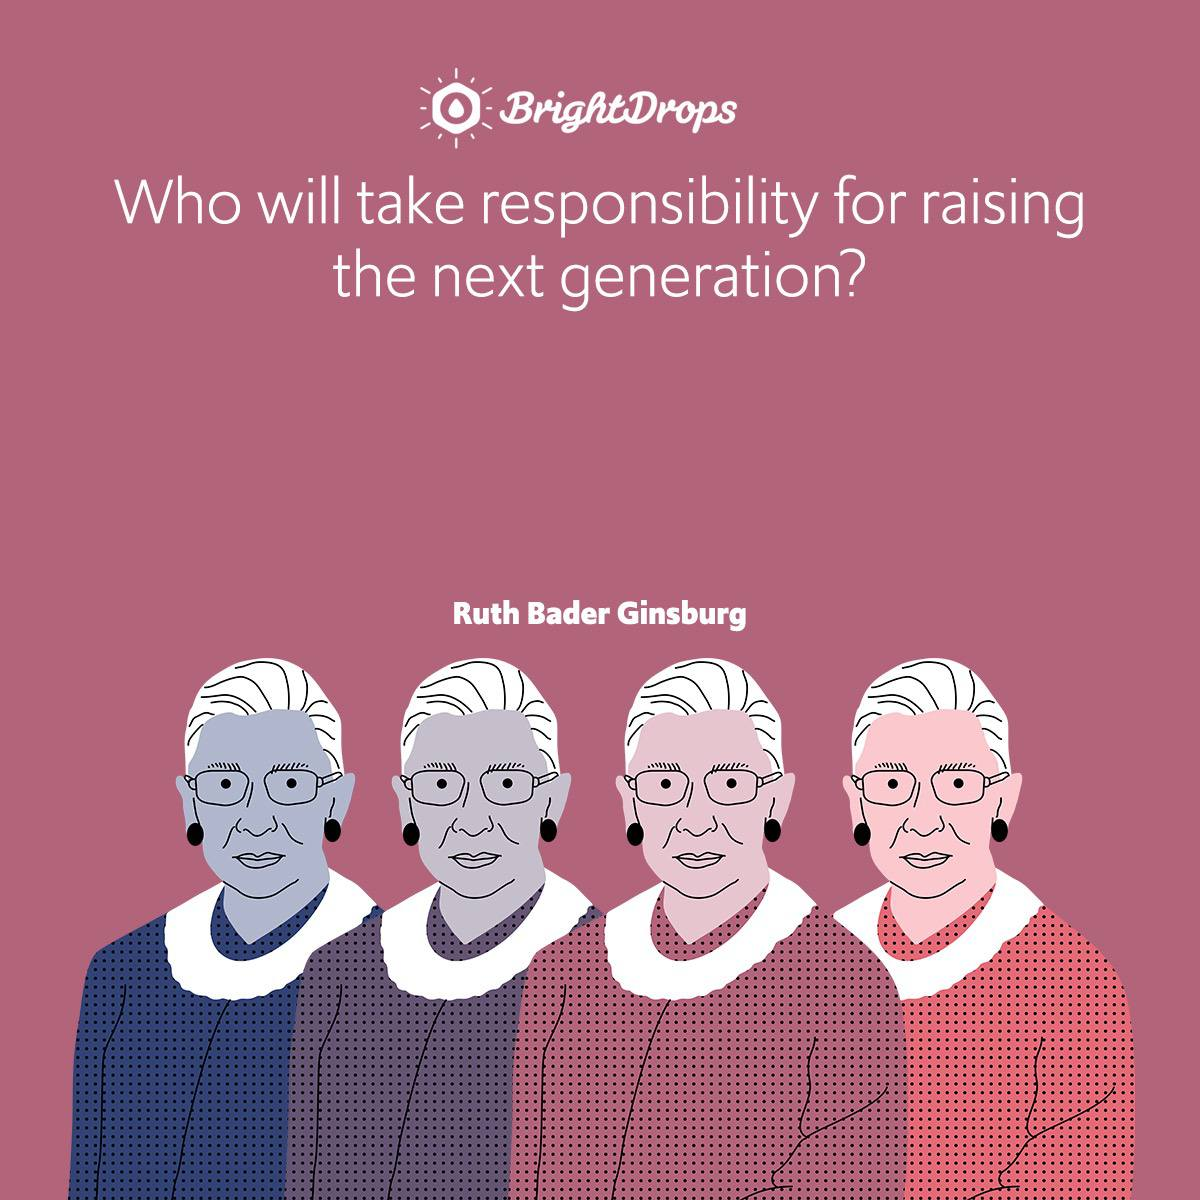 Who will take responsibility for raising the next generation?